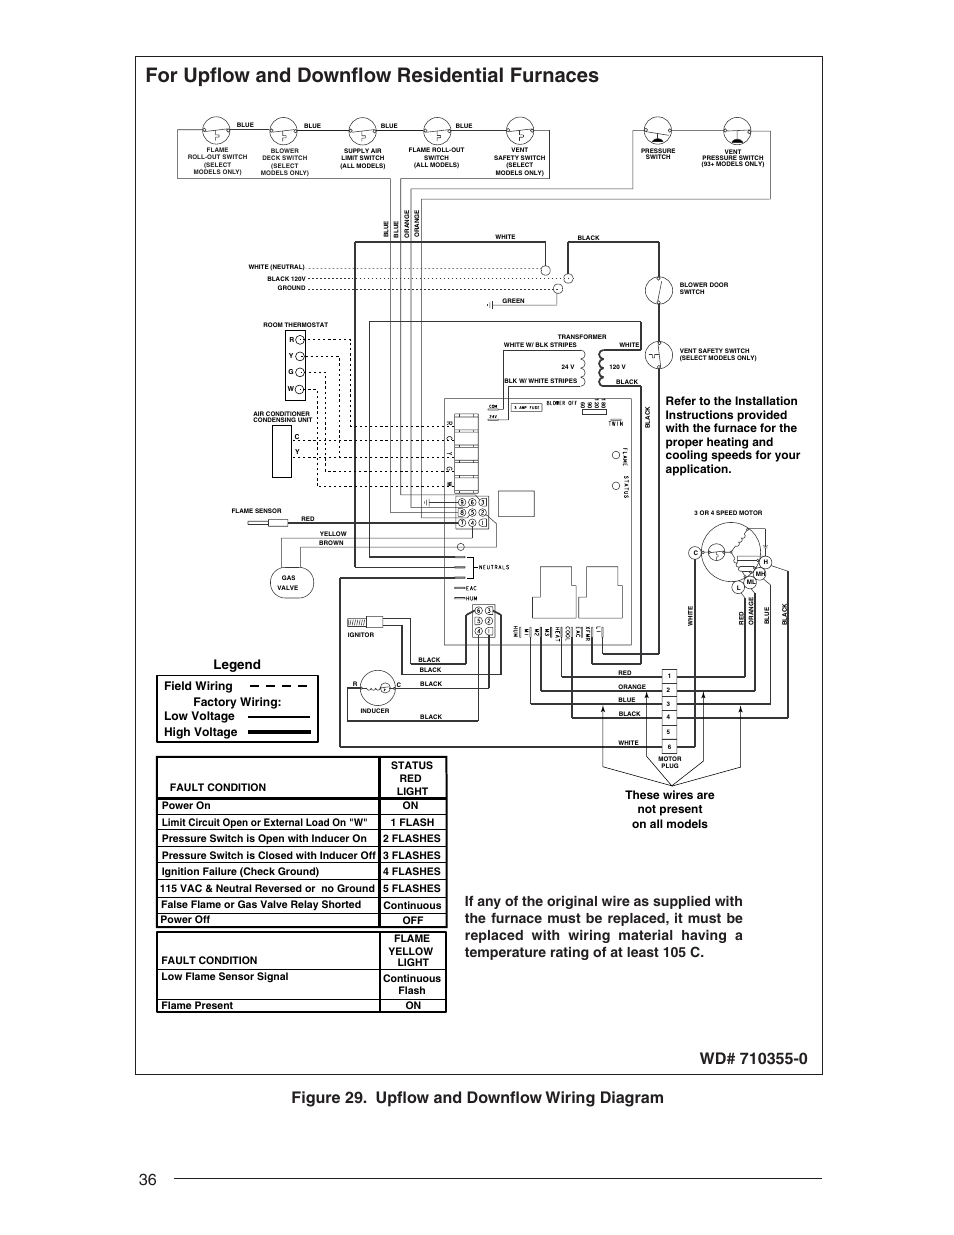 Luxaire Wiring Diagram